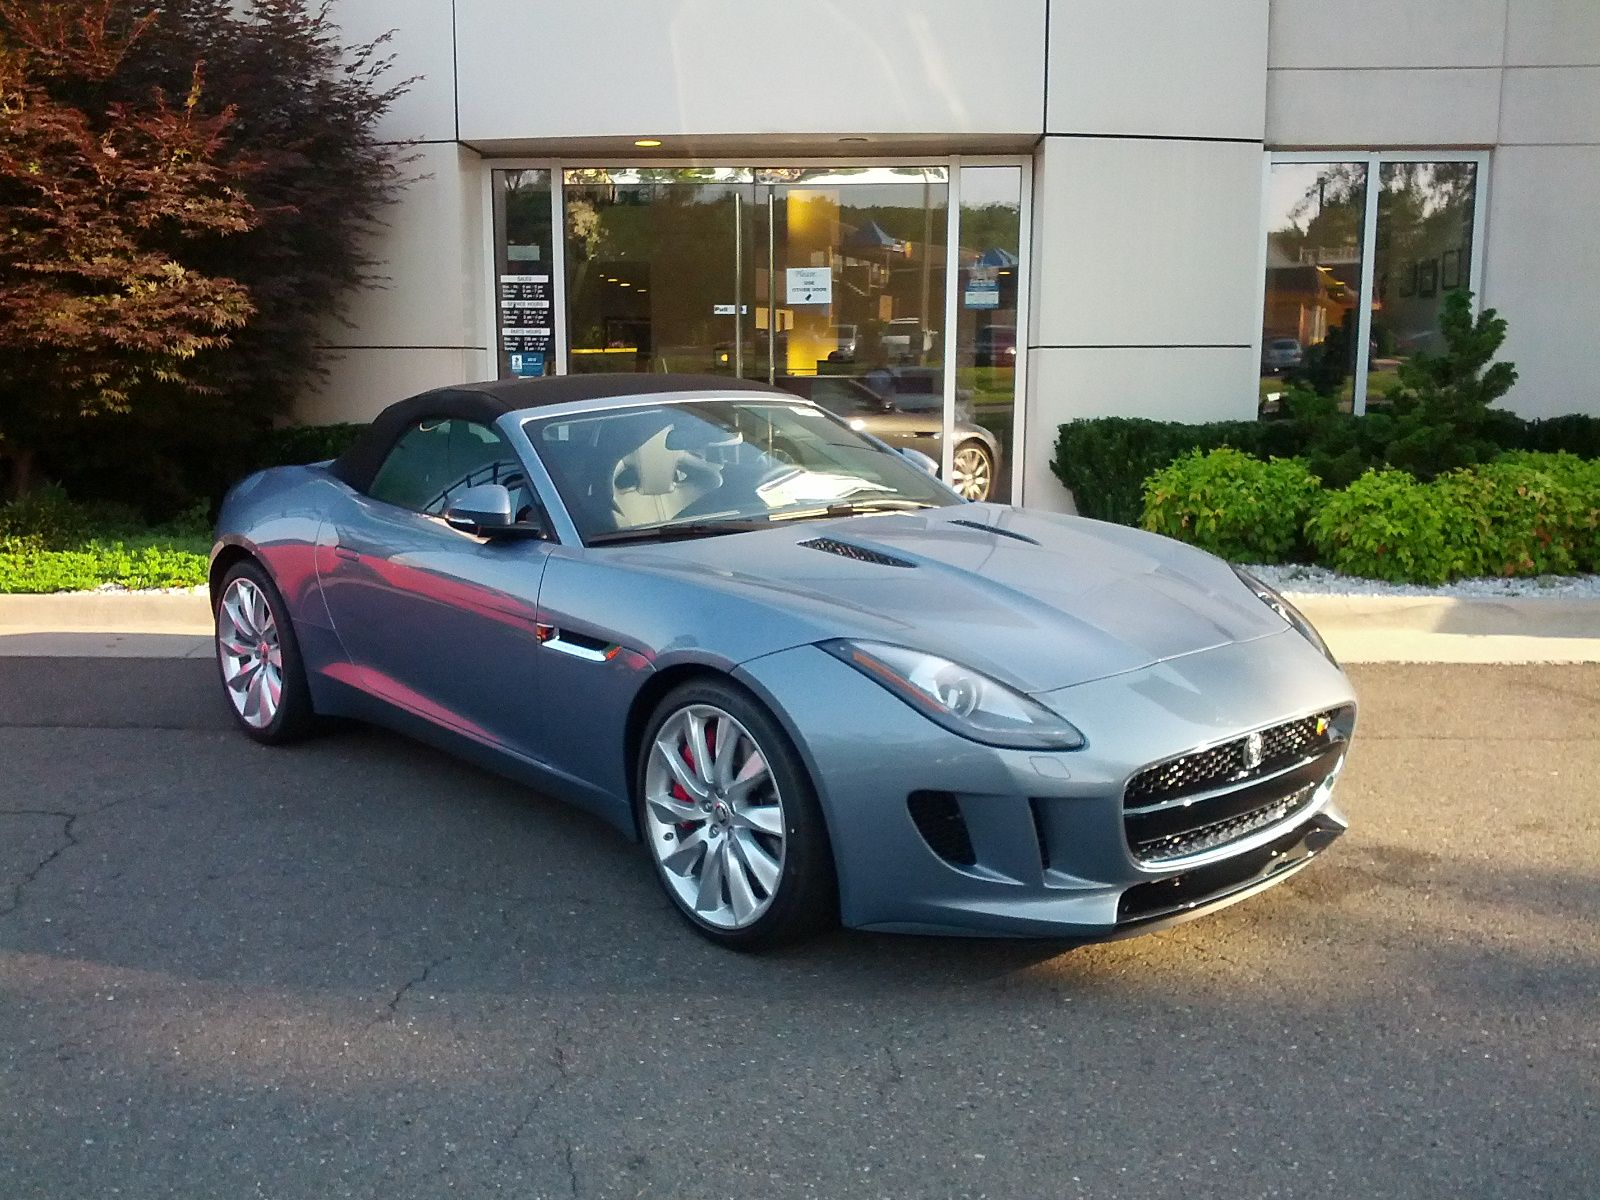 Couldn T Resist Taking A Few Pics Of This Very Nice Looking New Jaguar F Type Yesterday On The Lot Same Car As Xk Version Without Rear Jump Seat